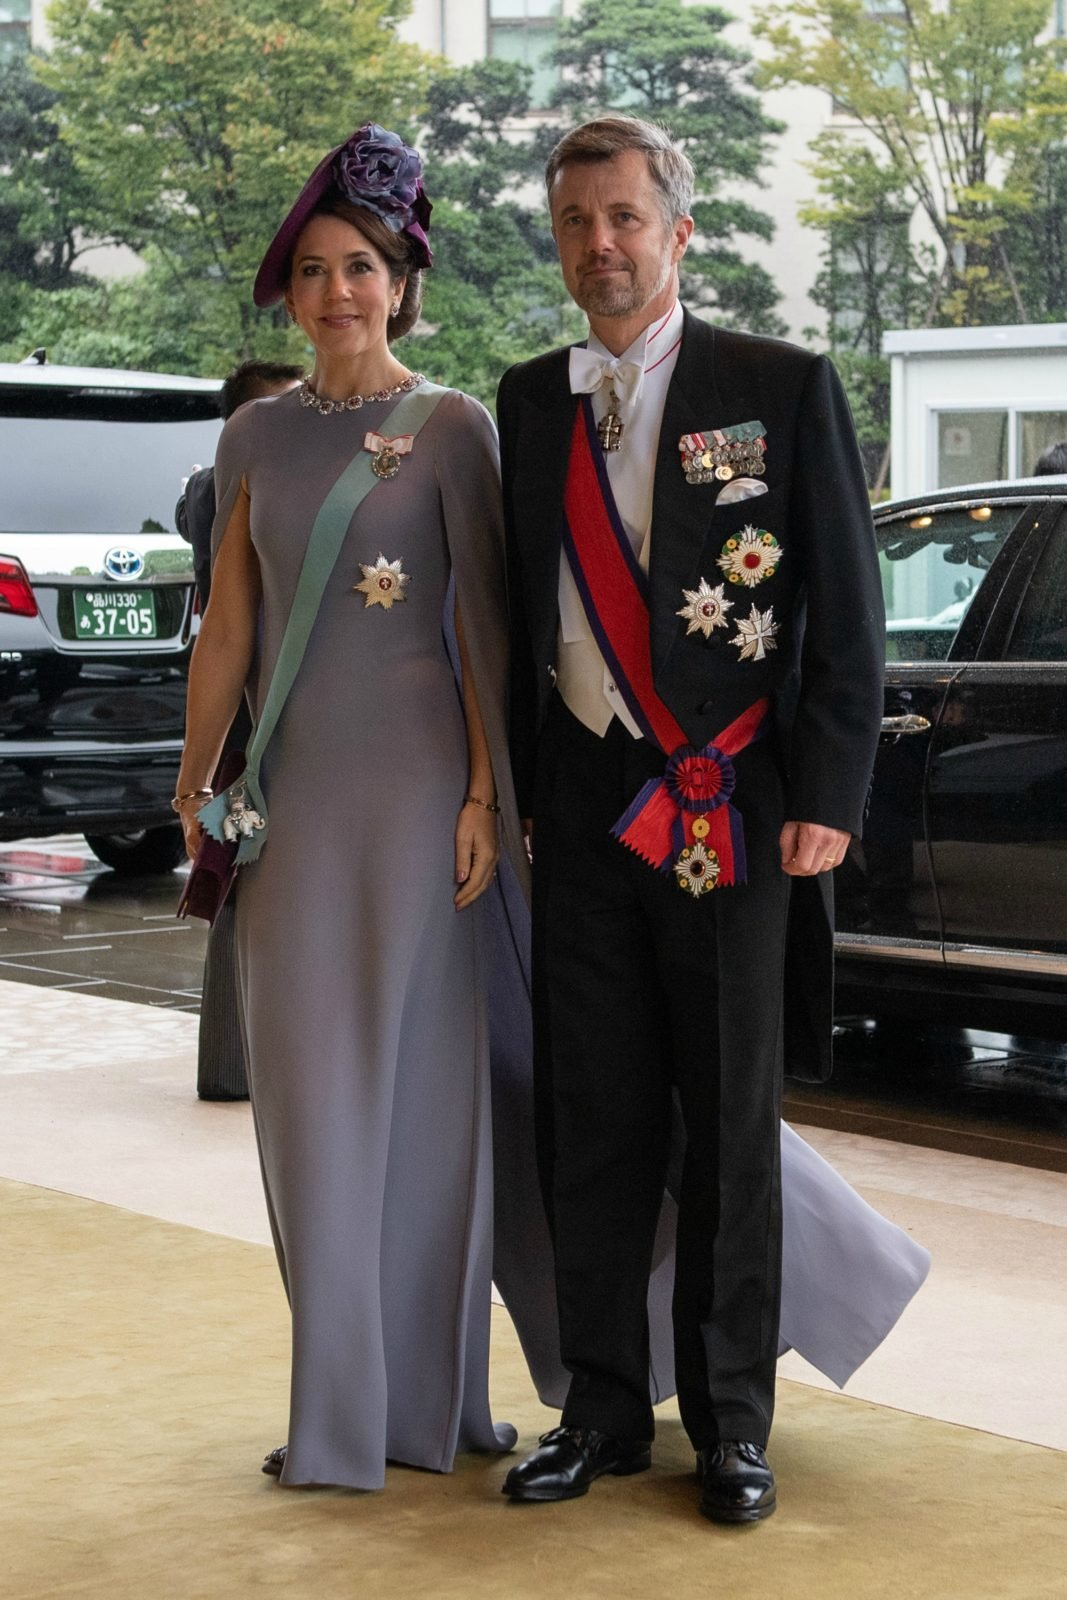 Princess Mary opted for a sleek grey floor-length dress for the enthronement ceremony in Japan. Source: Getty.